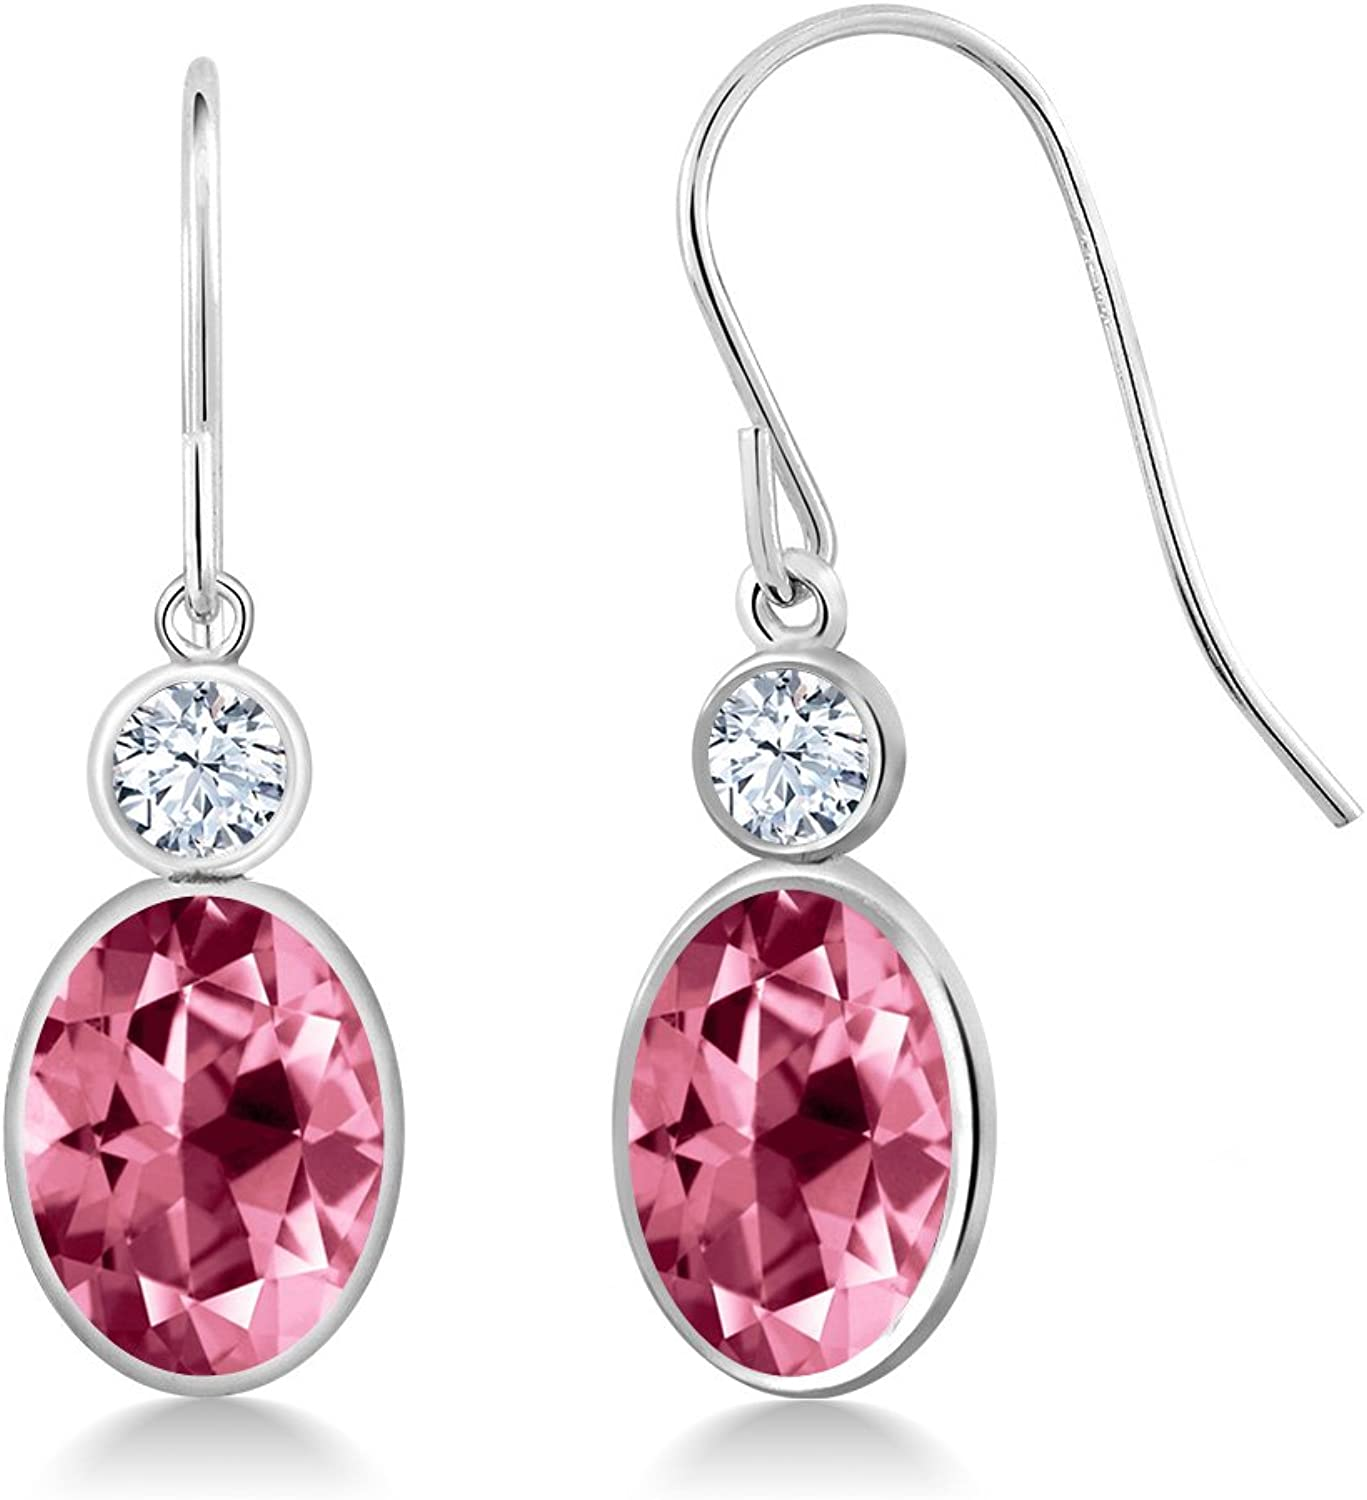 2.90 Ct Pink 14K White gold Earrings Natural Topaz Cut by Swarovski